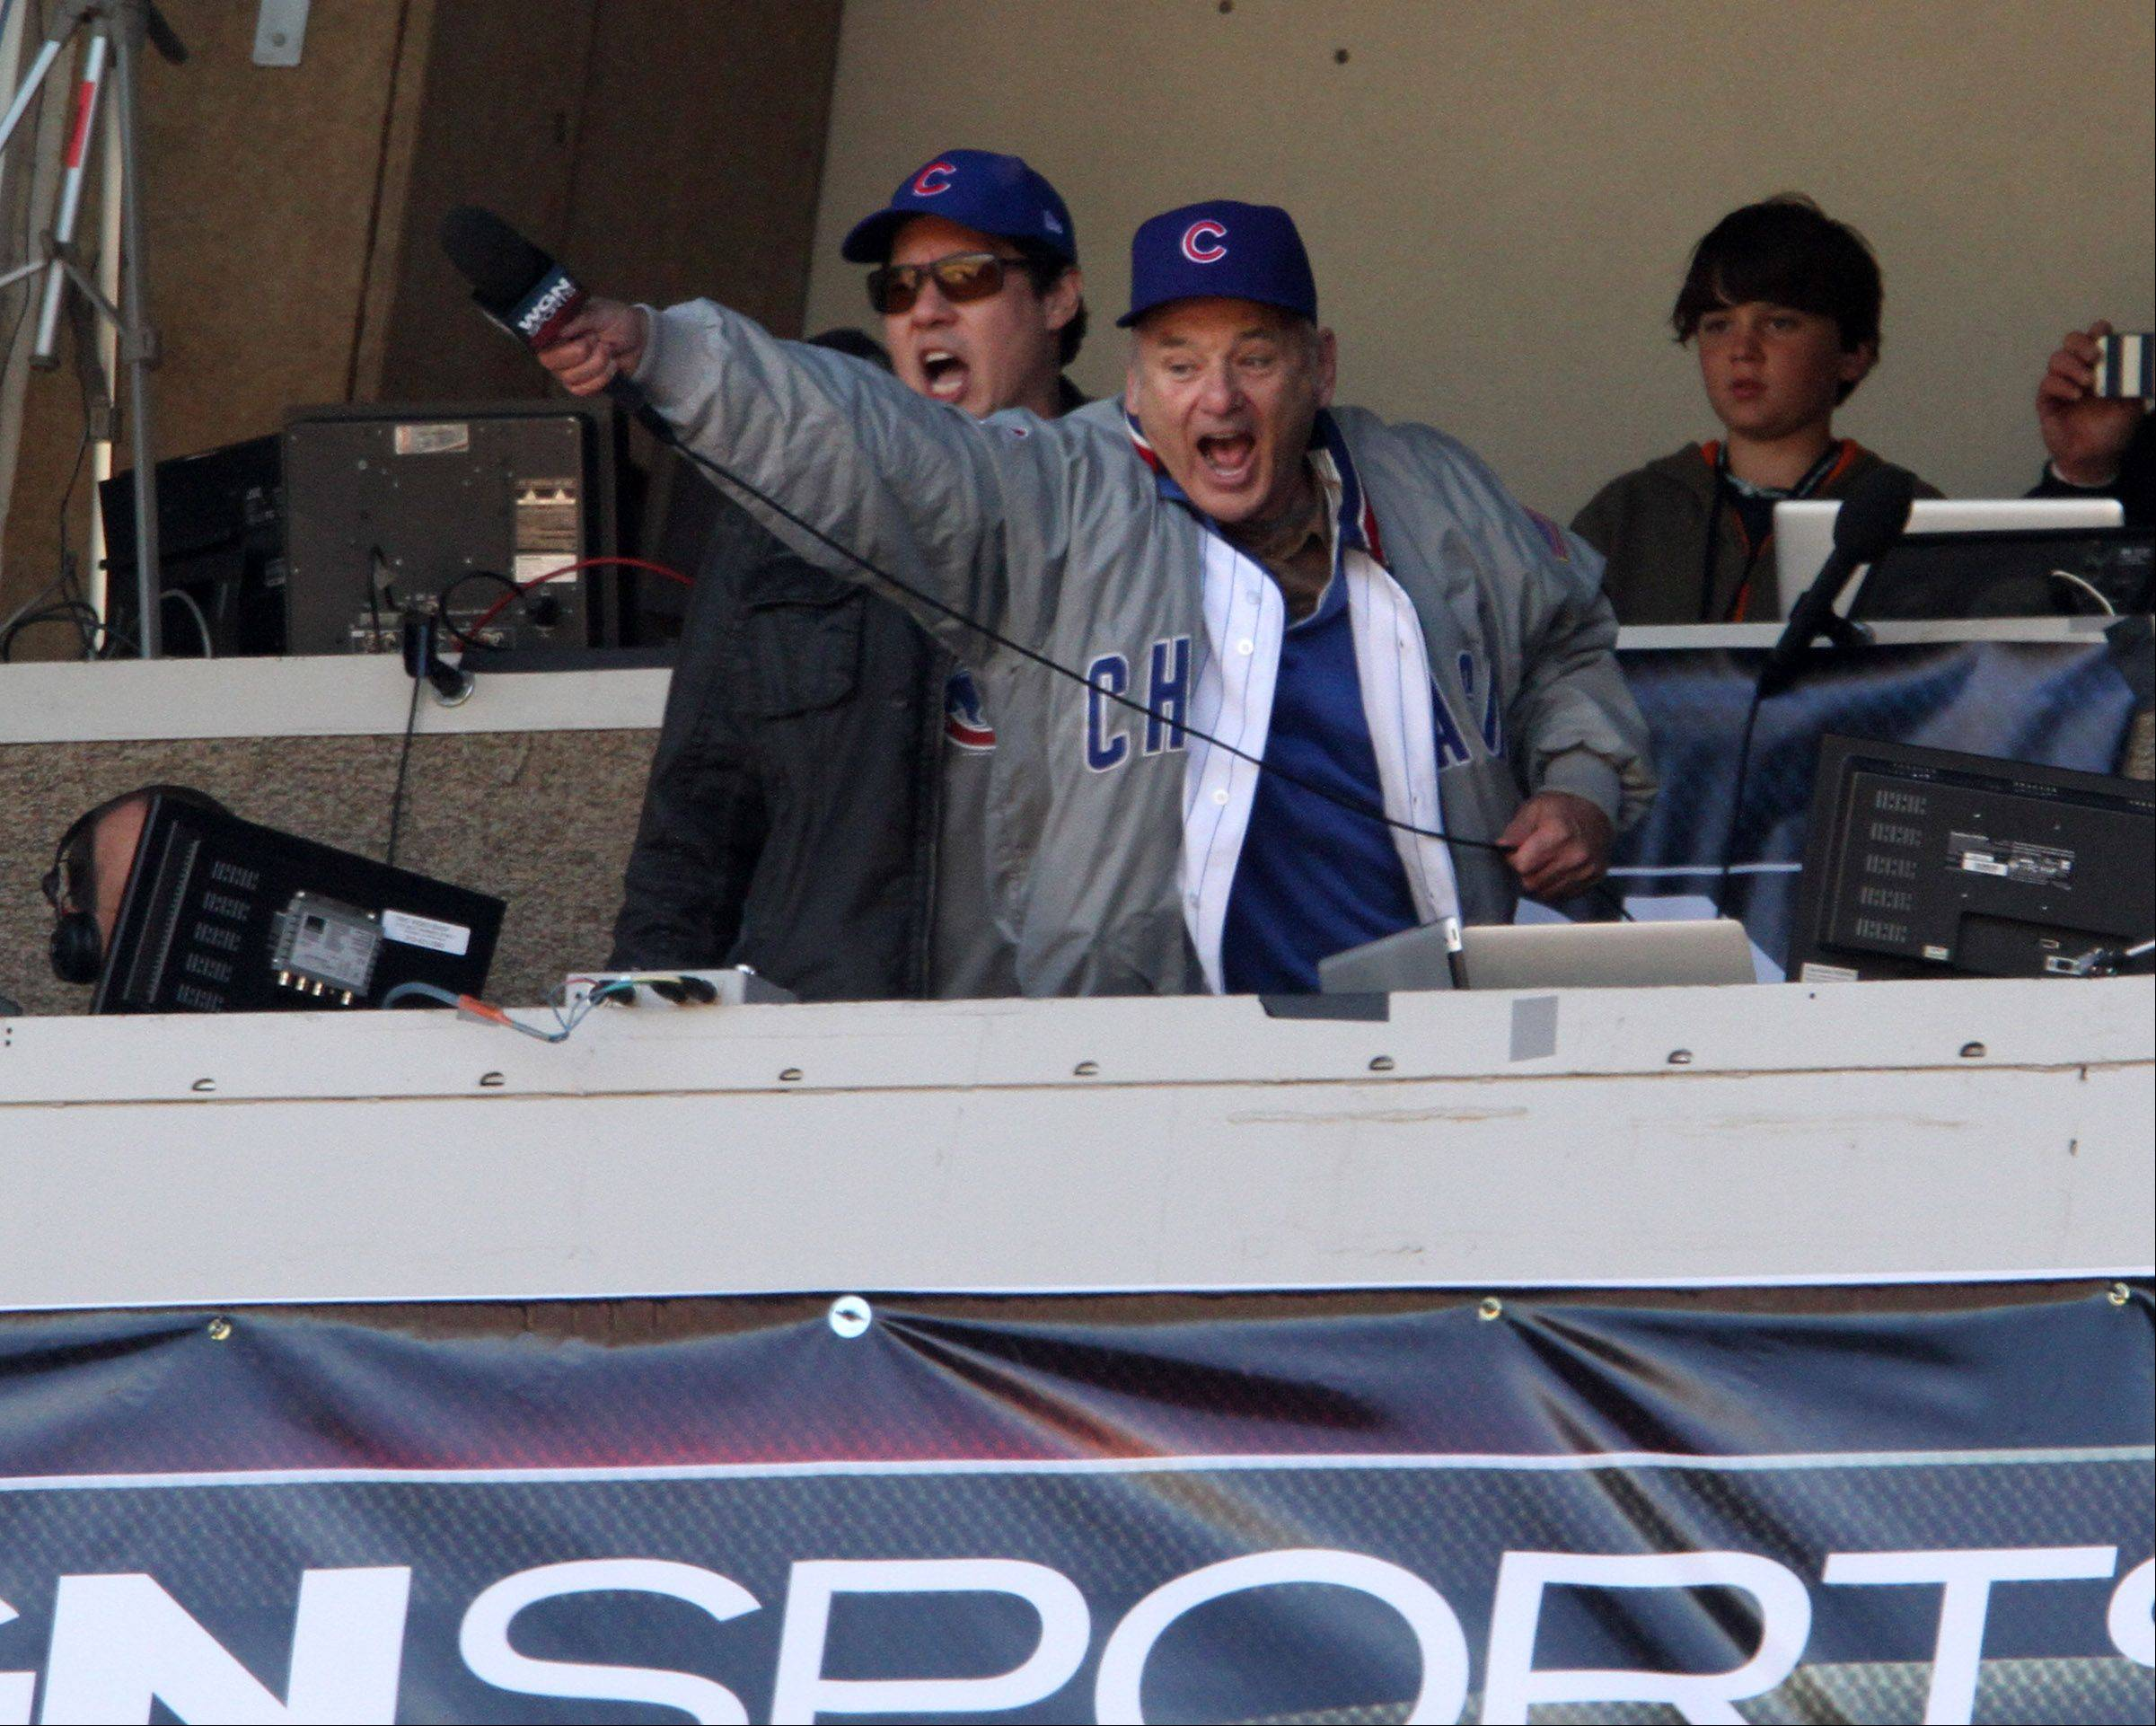 George LeClaire/gleclaire@dailyherald.comActor Bill Murray tries to fire the crowd up and get them to sing louder during the seventh-inning stretch at Wrigley Field.